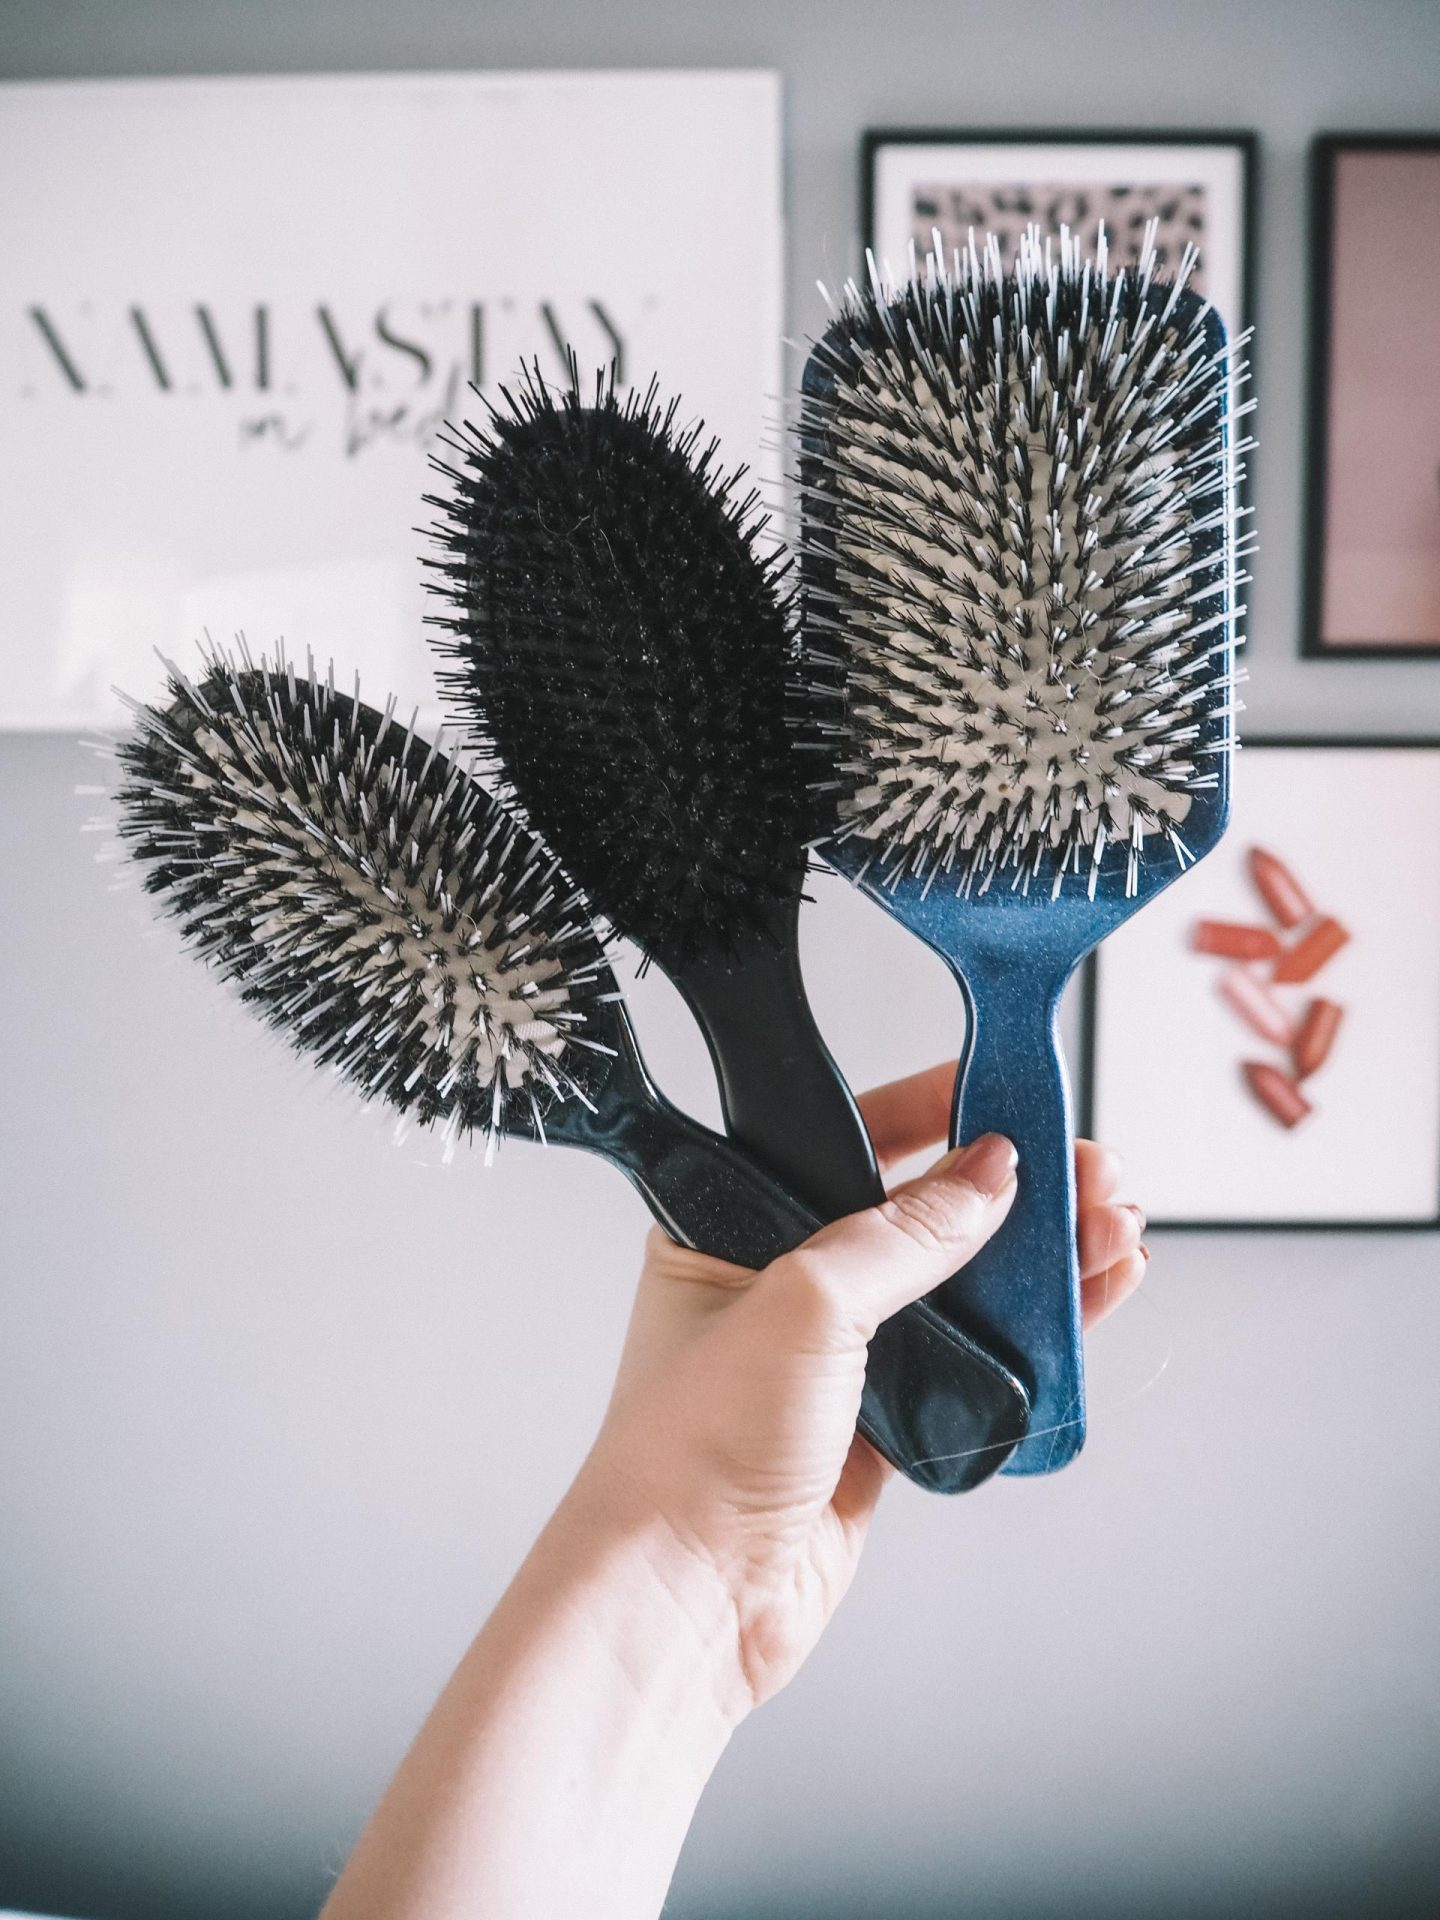 Great Lengths paddle brushes